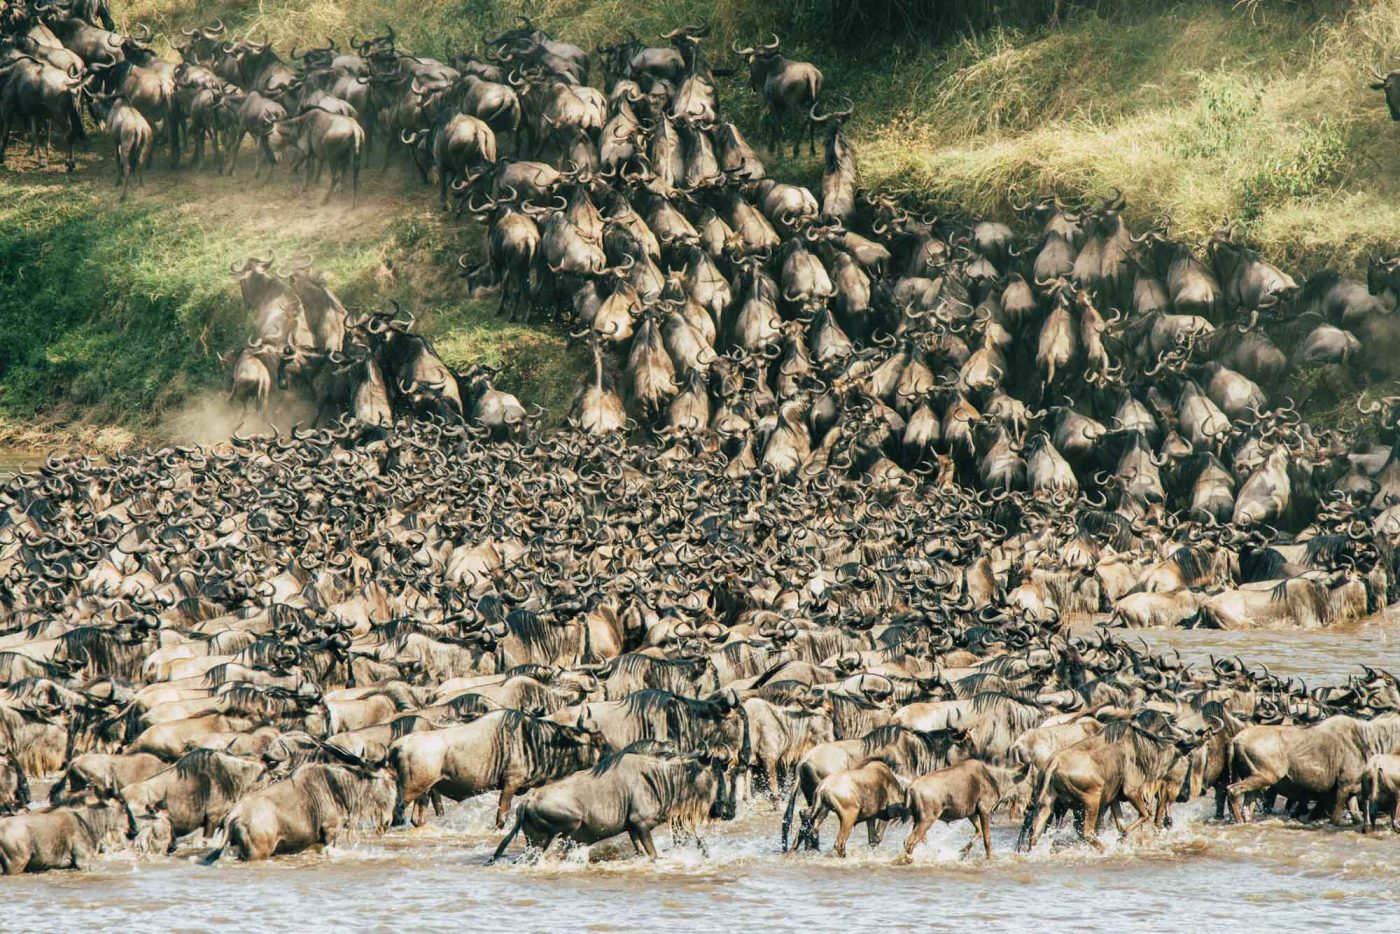 Wildebeest migration in the Serengeti, best place for safari in africa